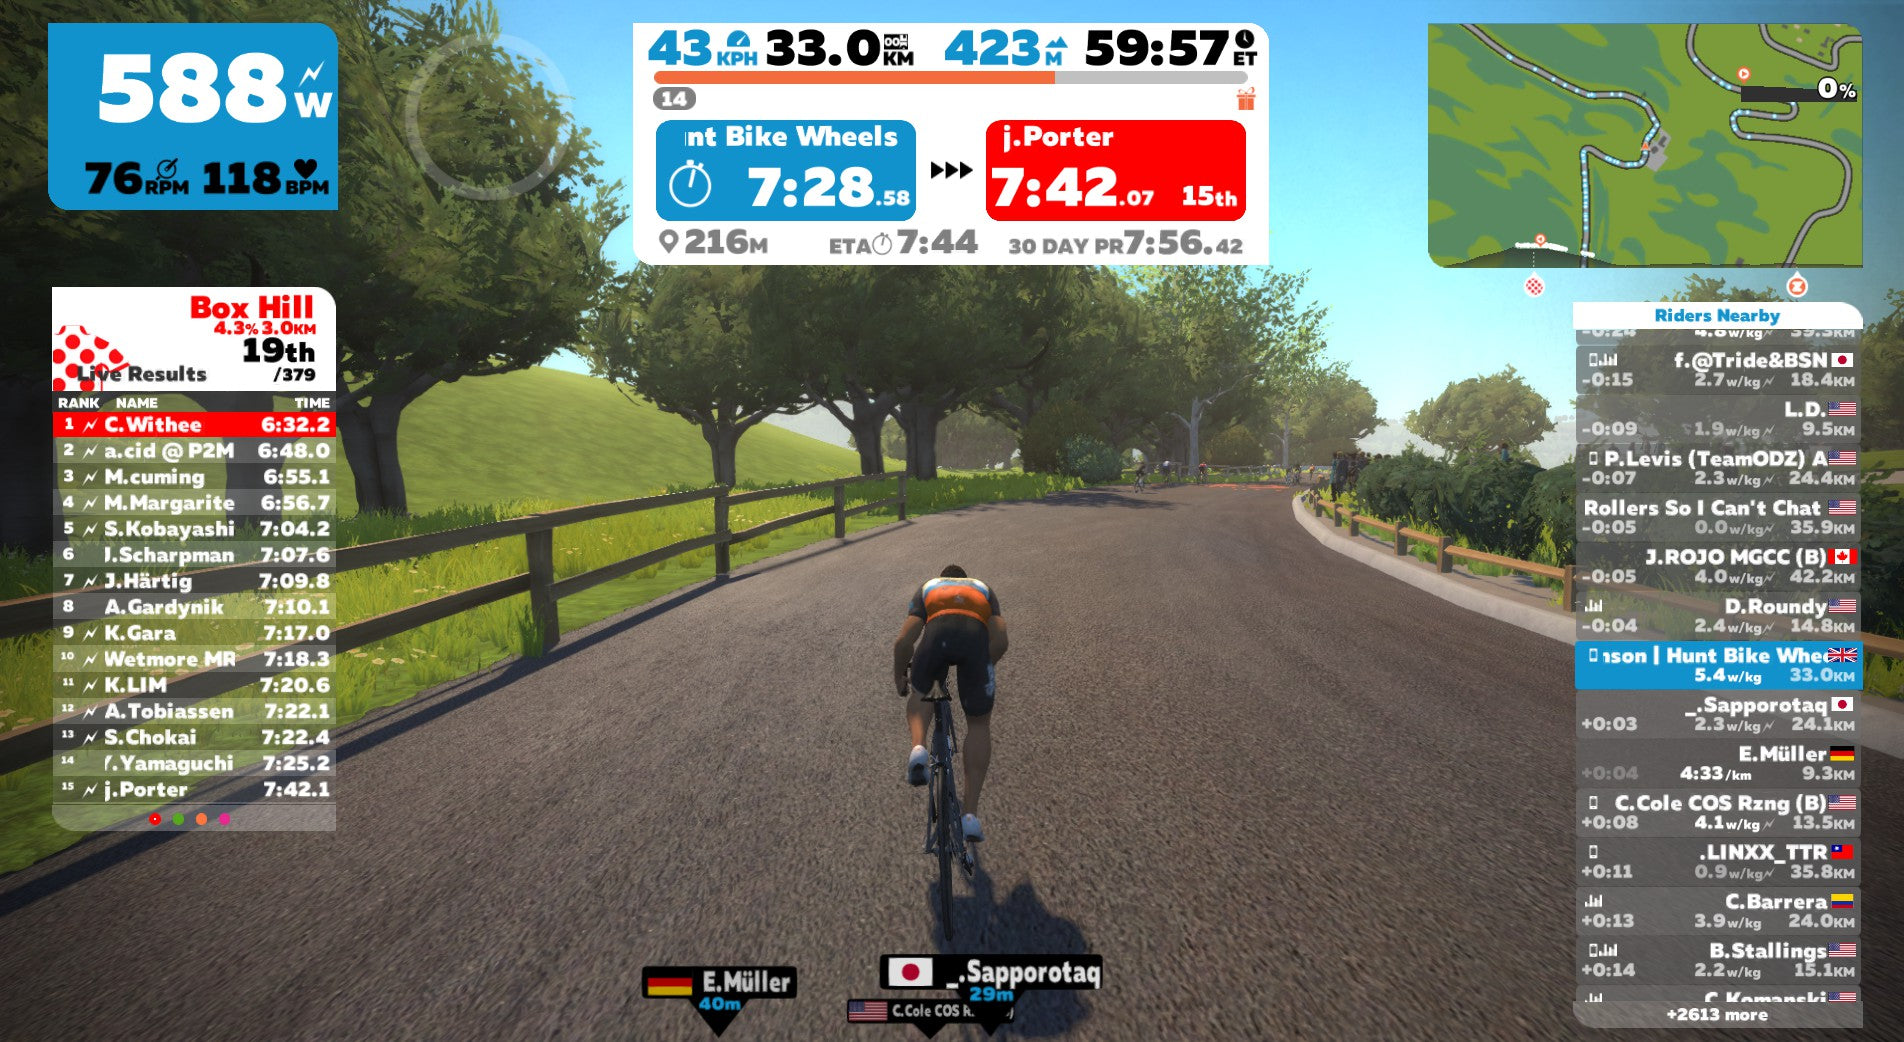 Will Johnsons Zwift race on 588 Watts